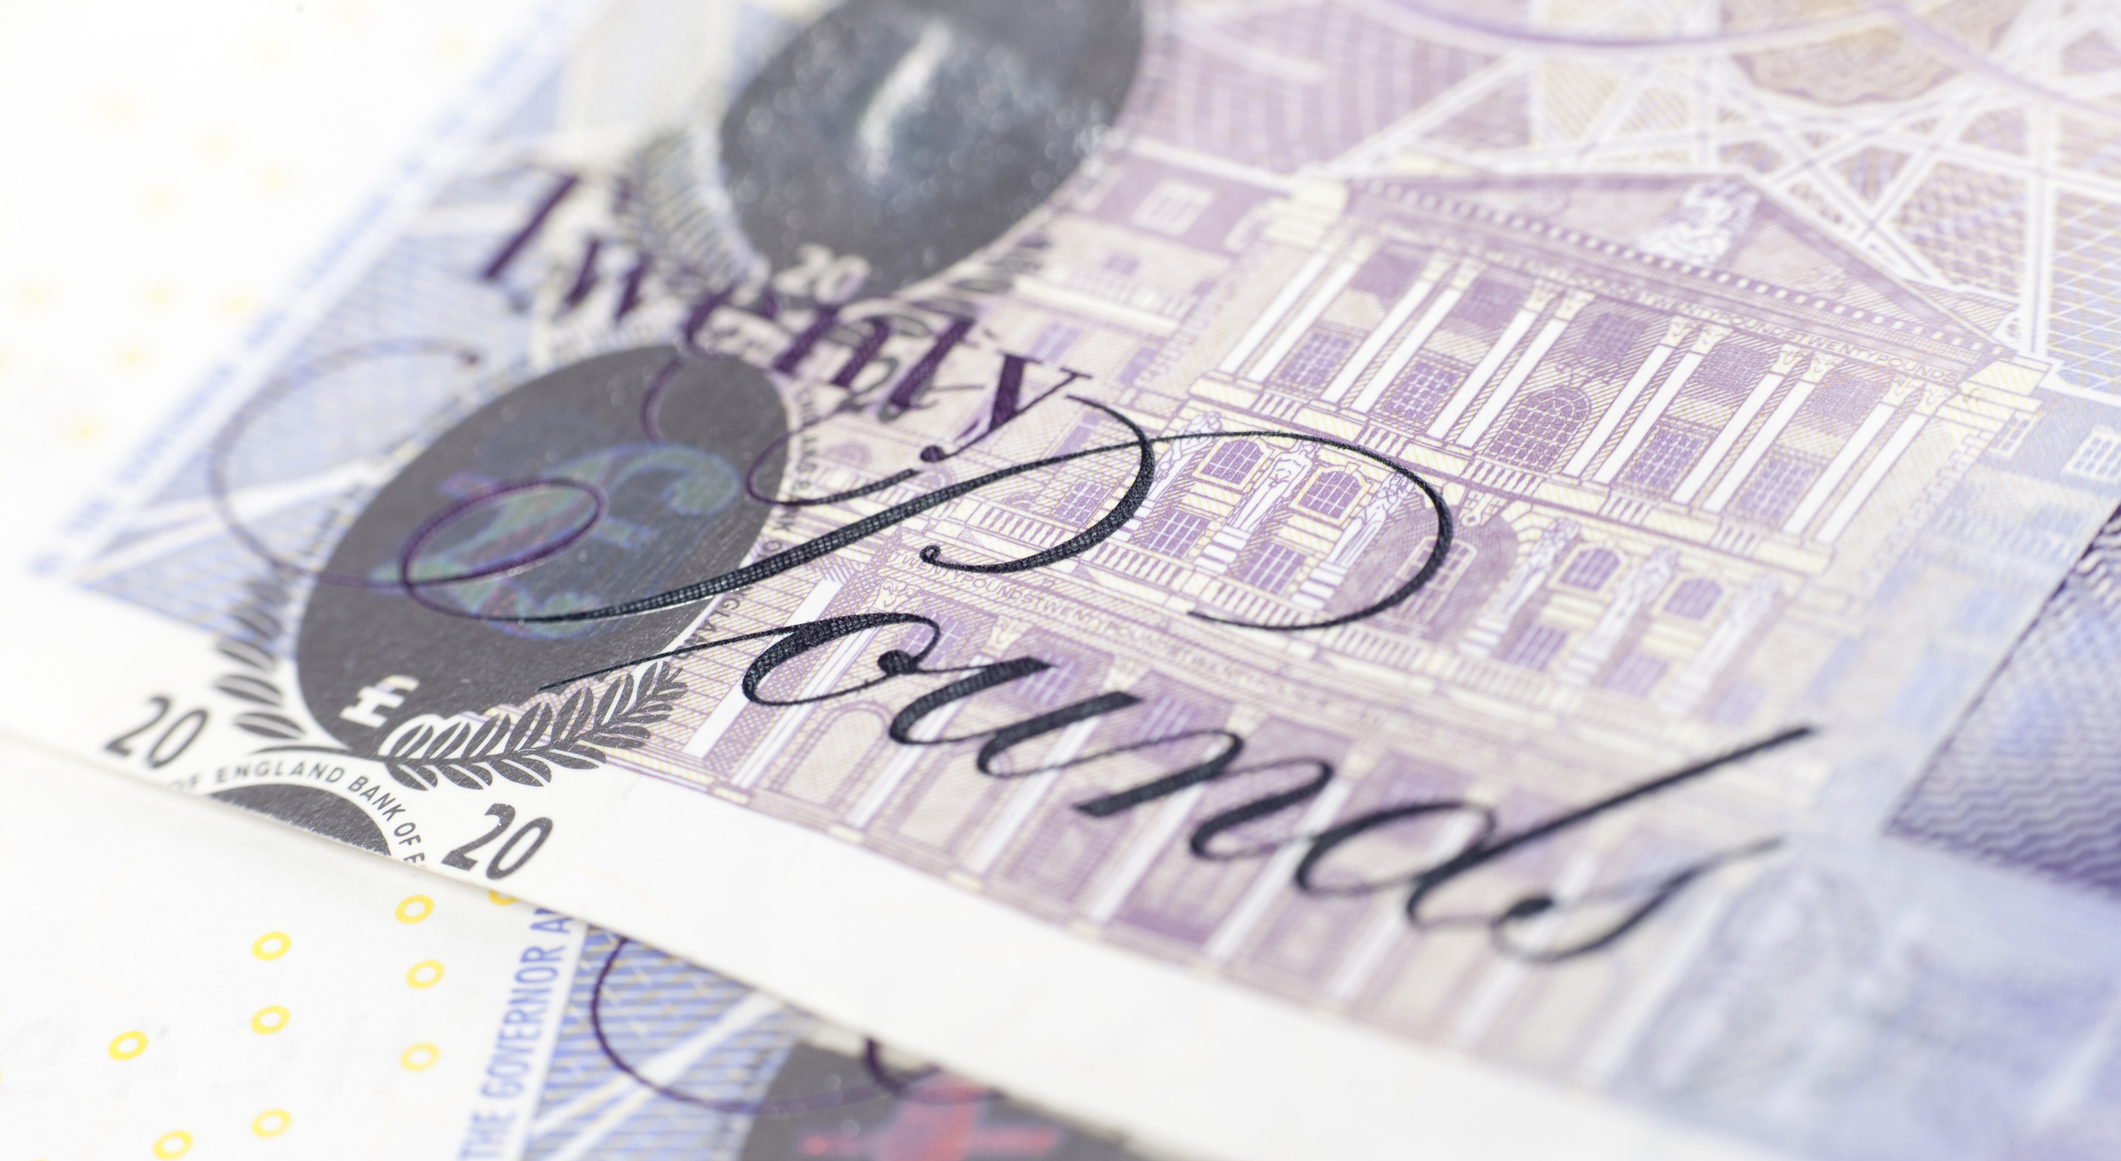 Next time you find some cash on the floor you might want to think twice before pocketing it.